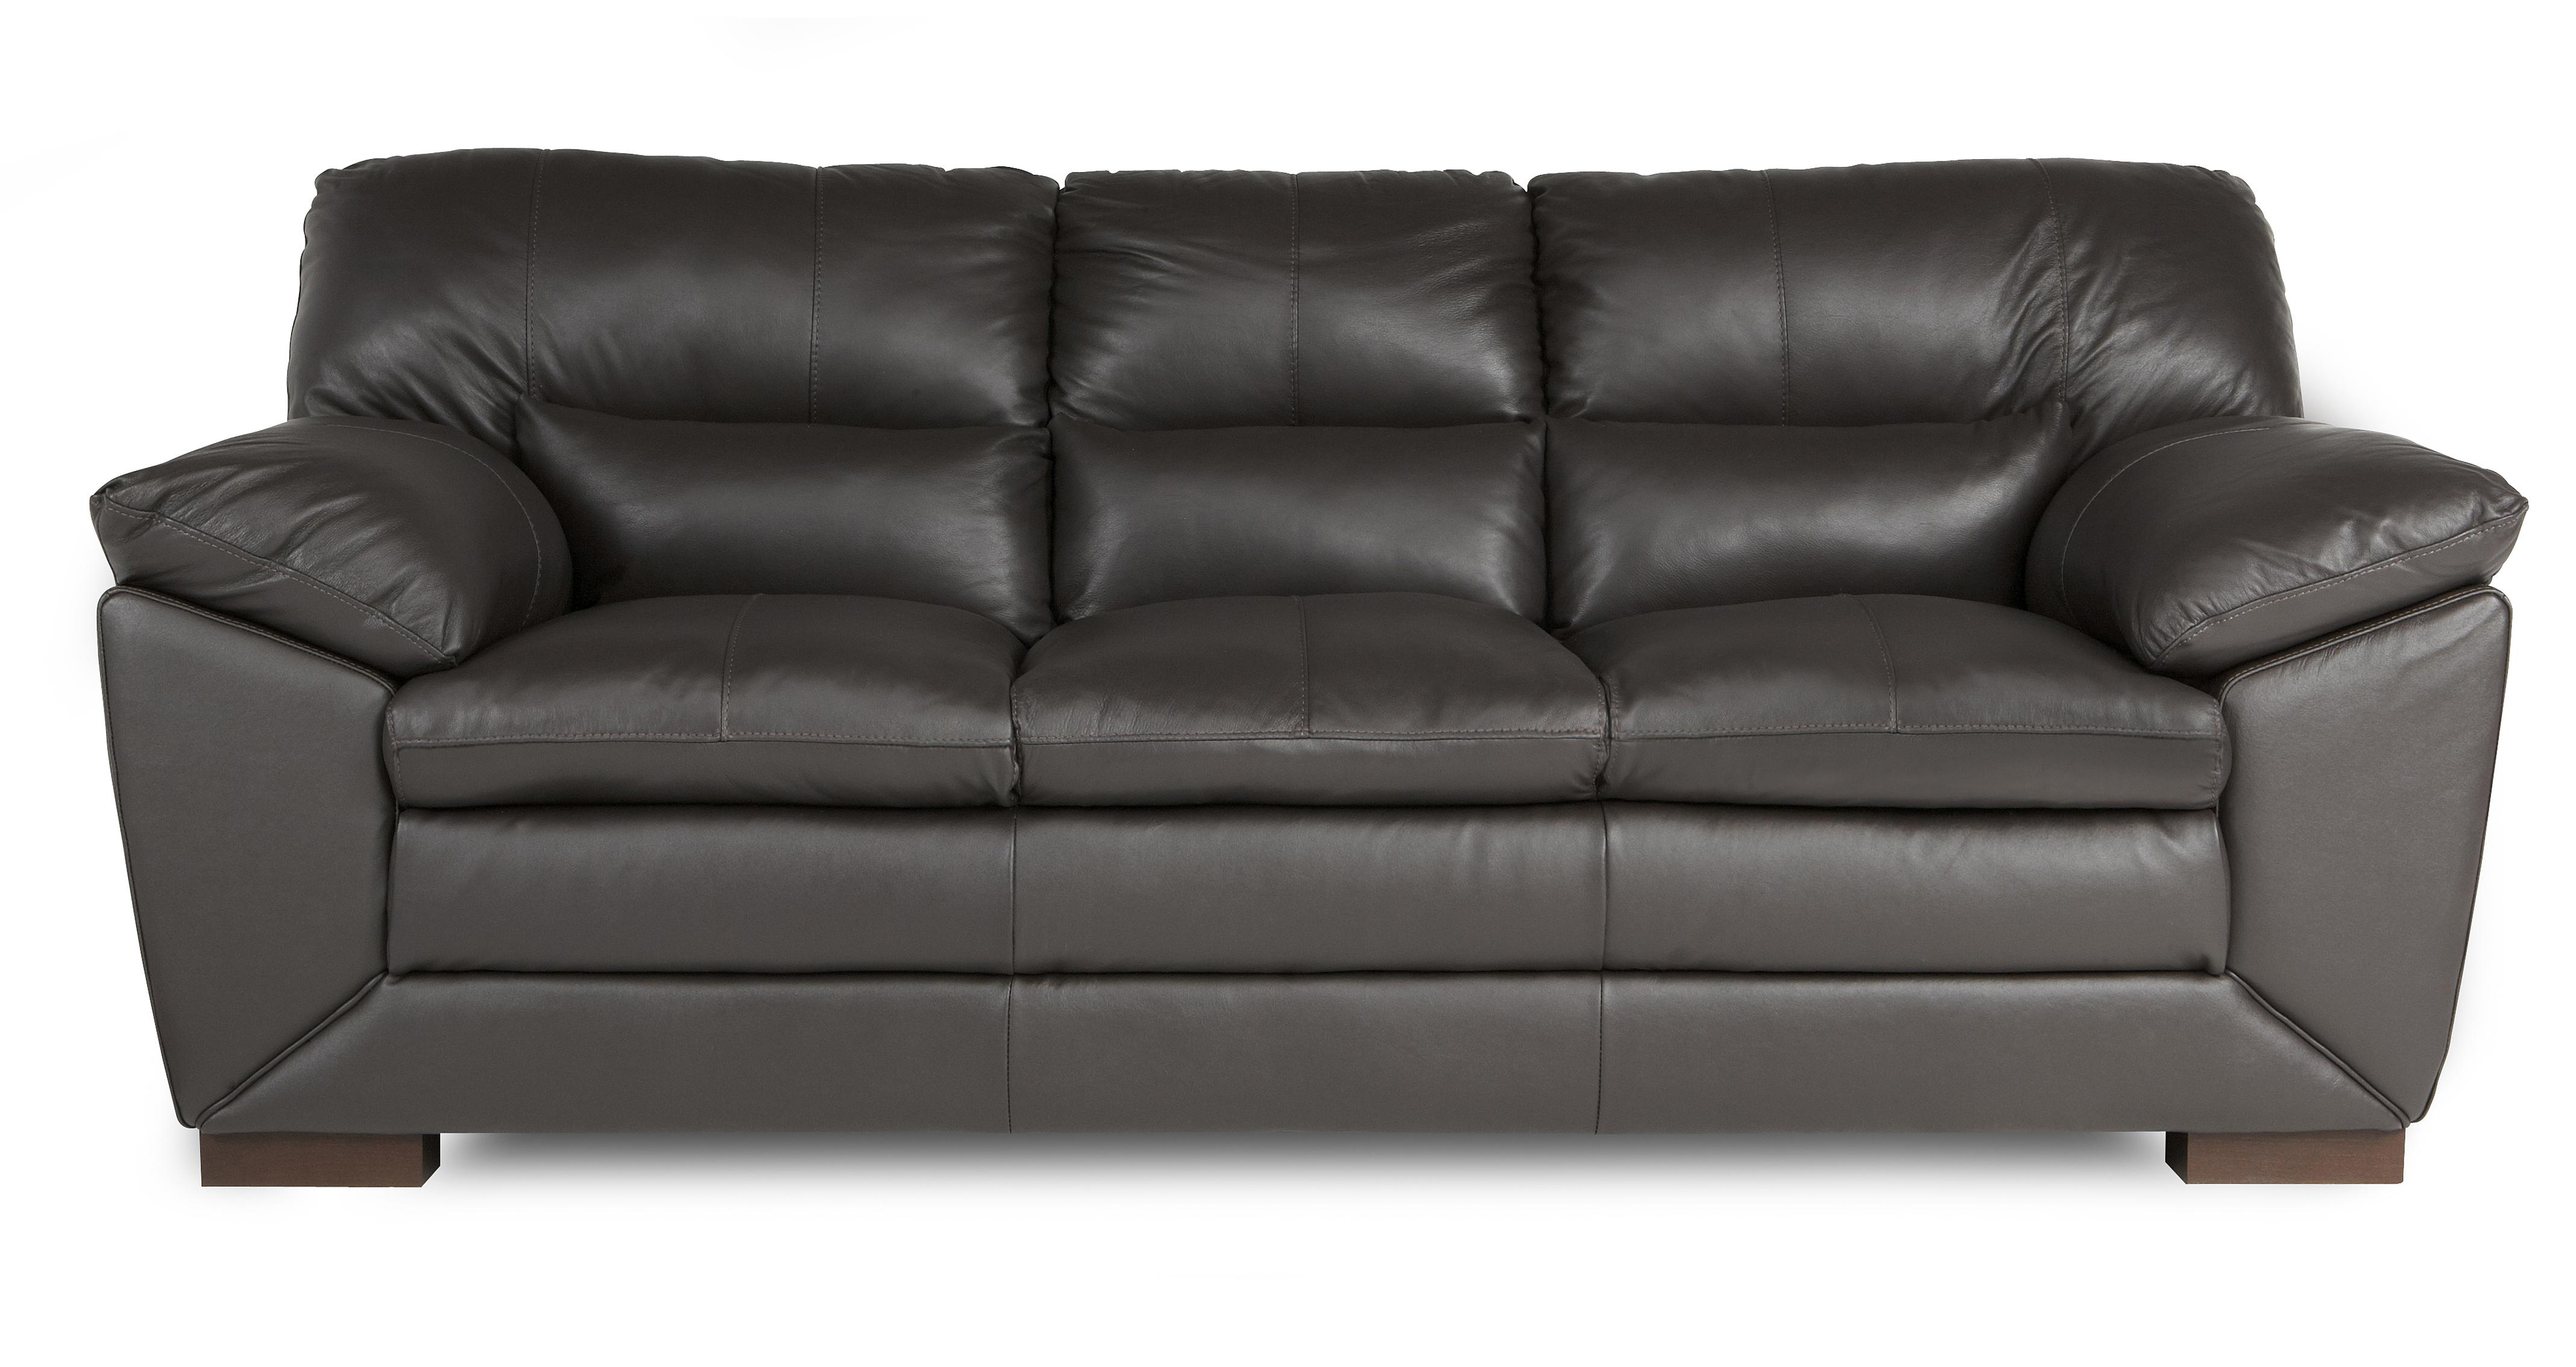 leather sofa brown dfs bed covers walmart valiant mocha 3 seater ebay